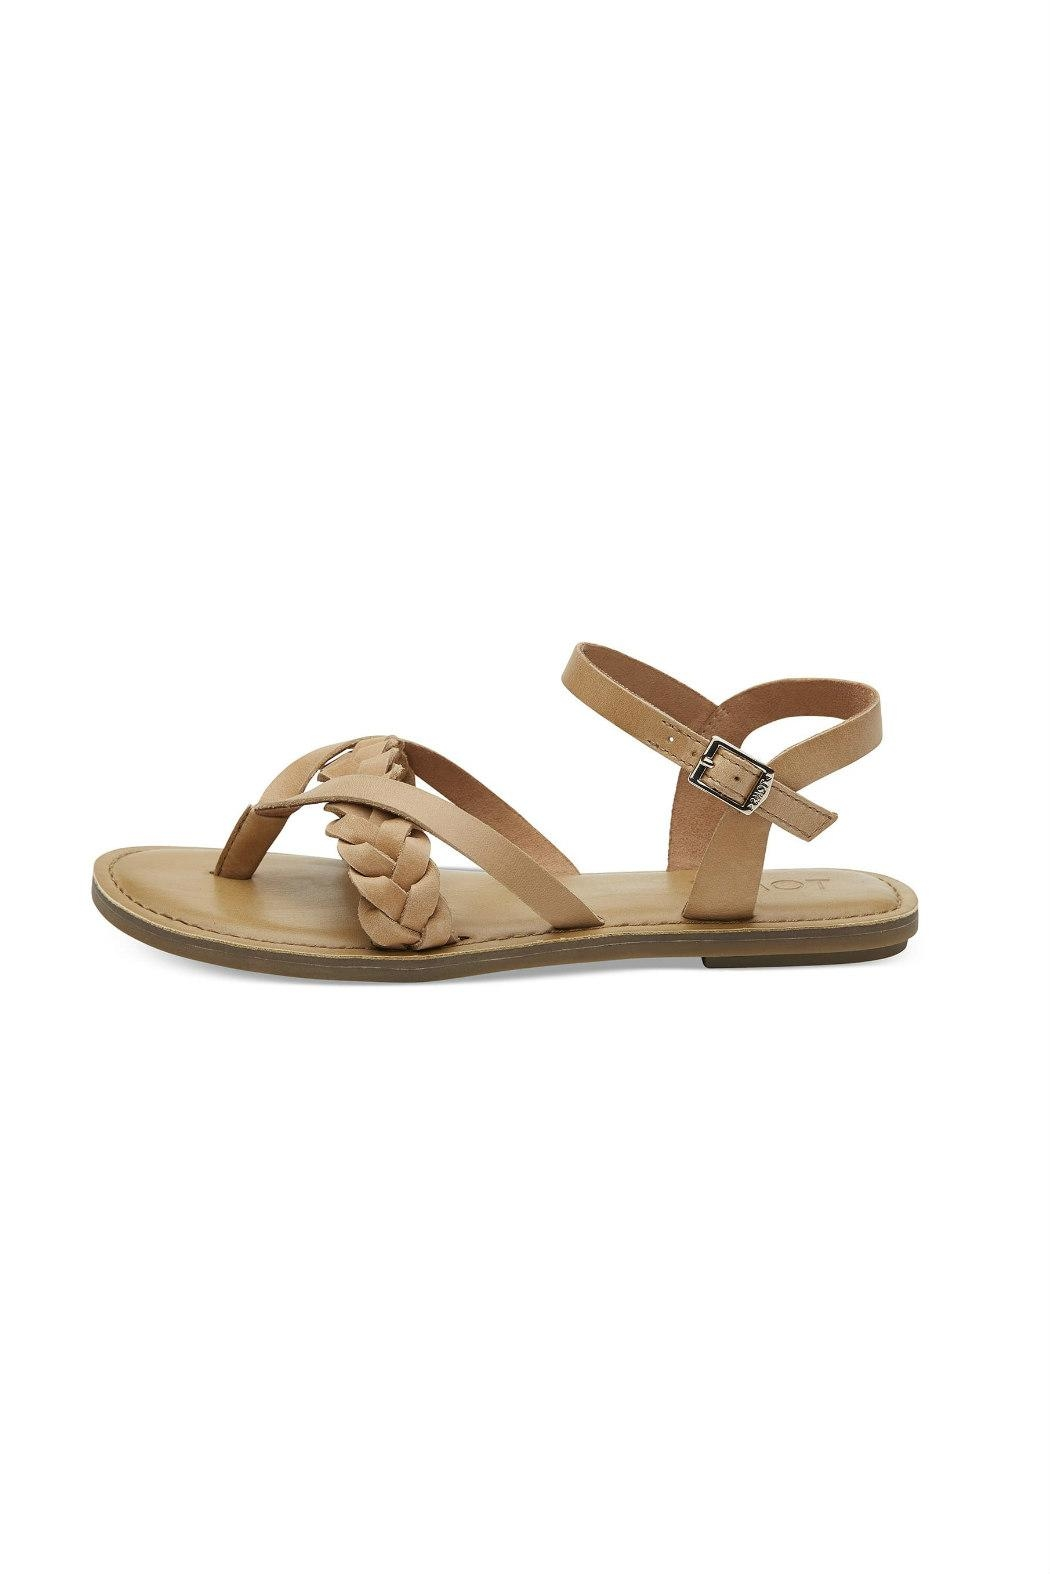 5025d7f84af TOMS Lexie Leather Sandal from Statesboro by Sole — Shoptiques